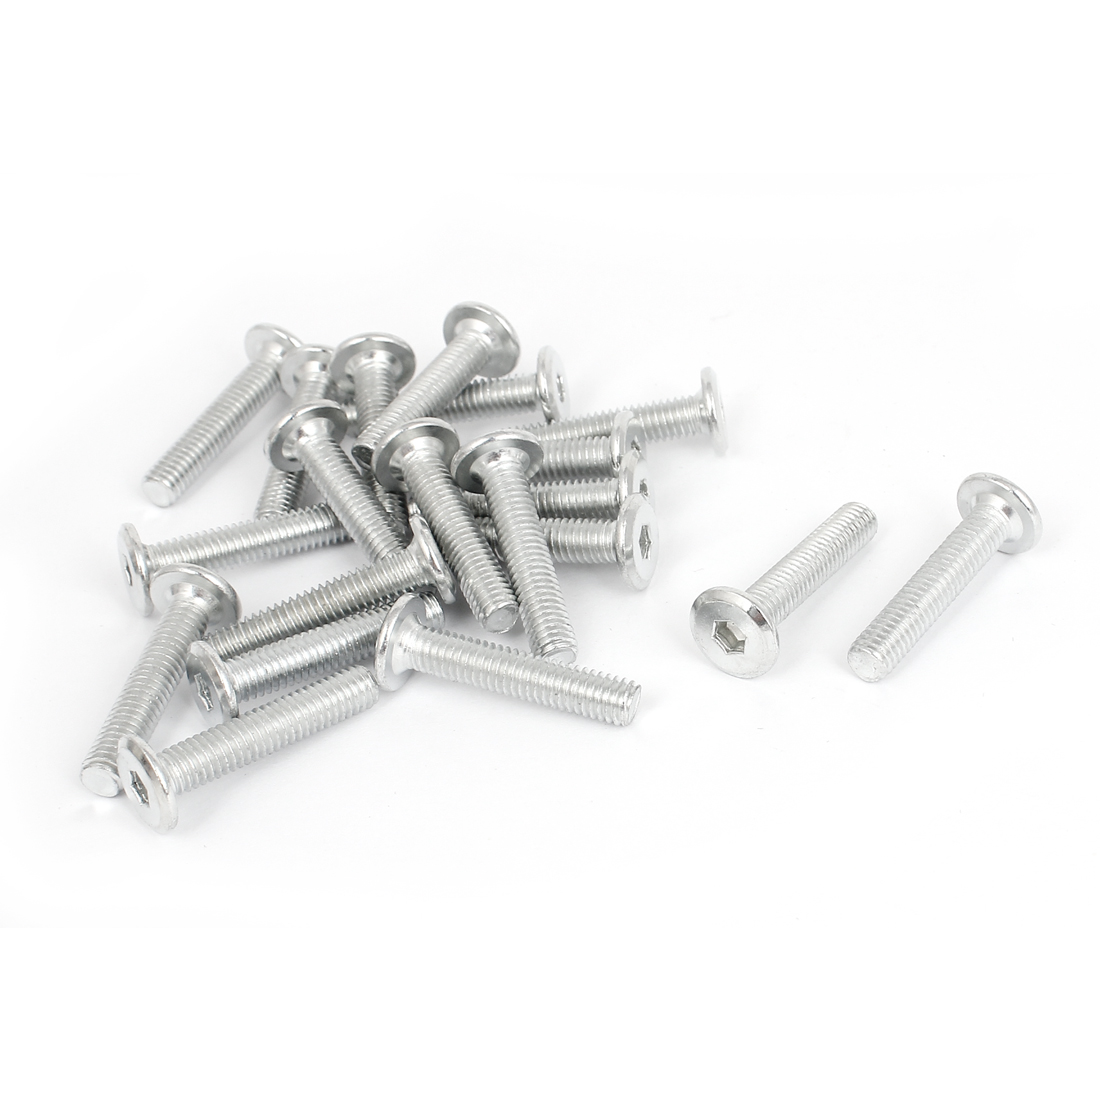 20 Pcs Countersunk Flat Head Cap Hex Socket Bolts Fasteners Screws M6 x 30mm